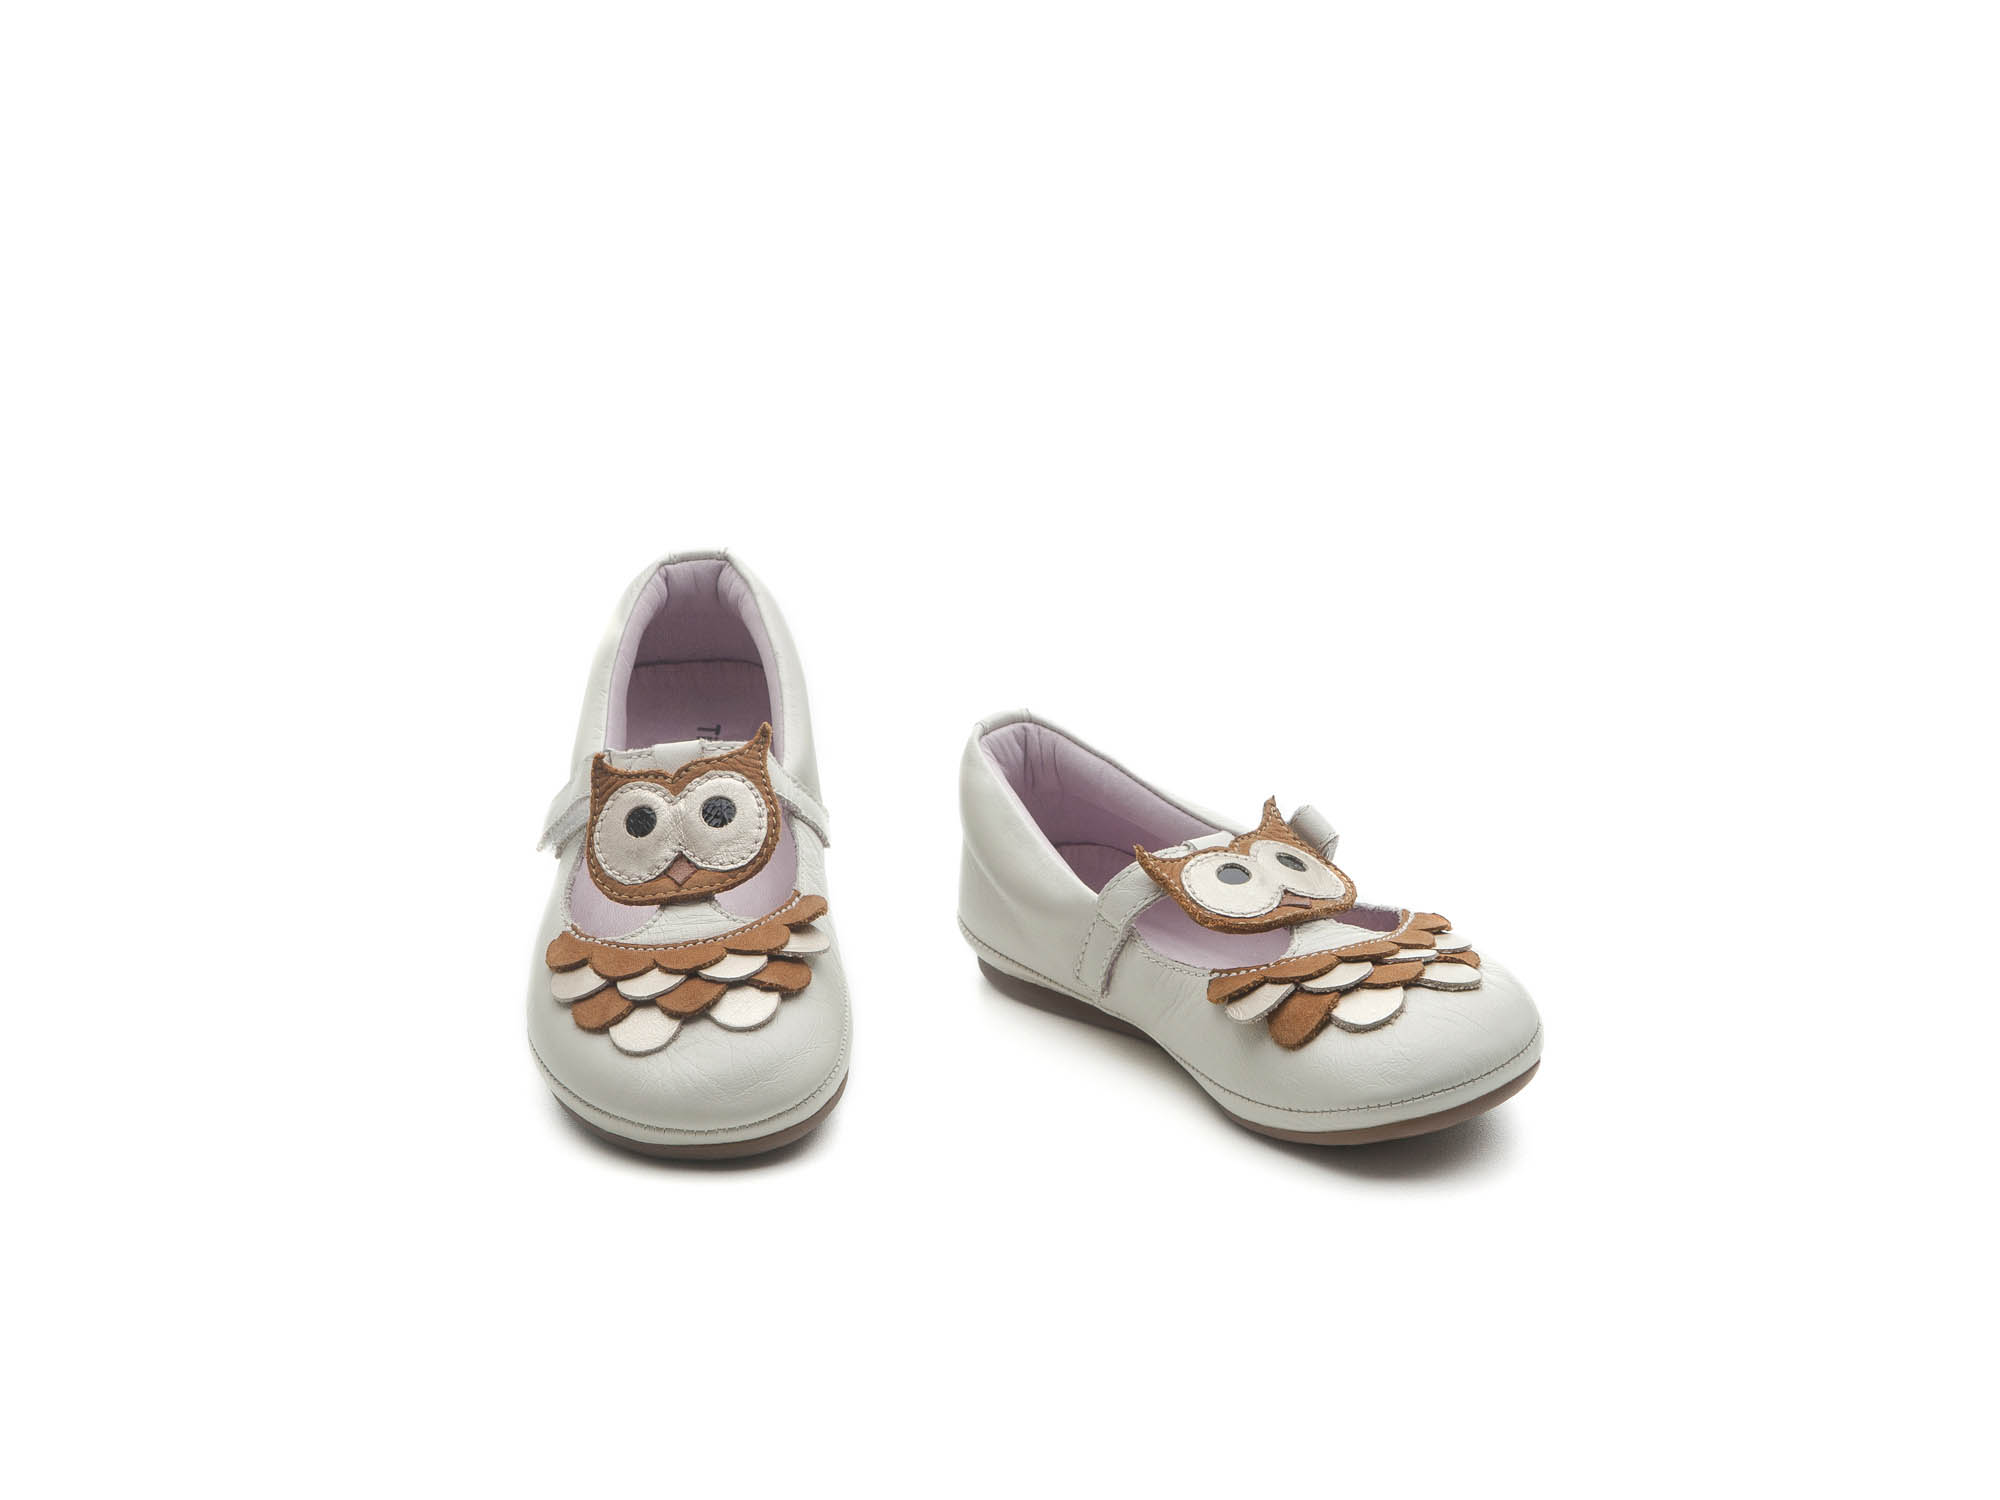 Mary Jane Little Owll Tapioca/ Ochre Toddler for ages 2 to 4 years - 1